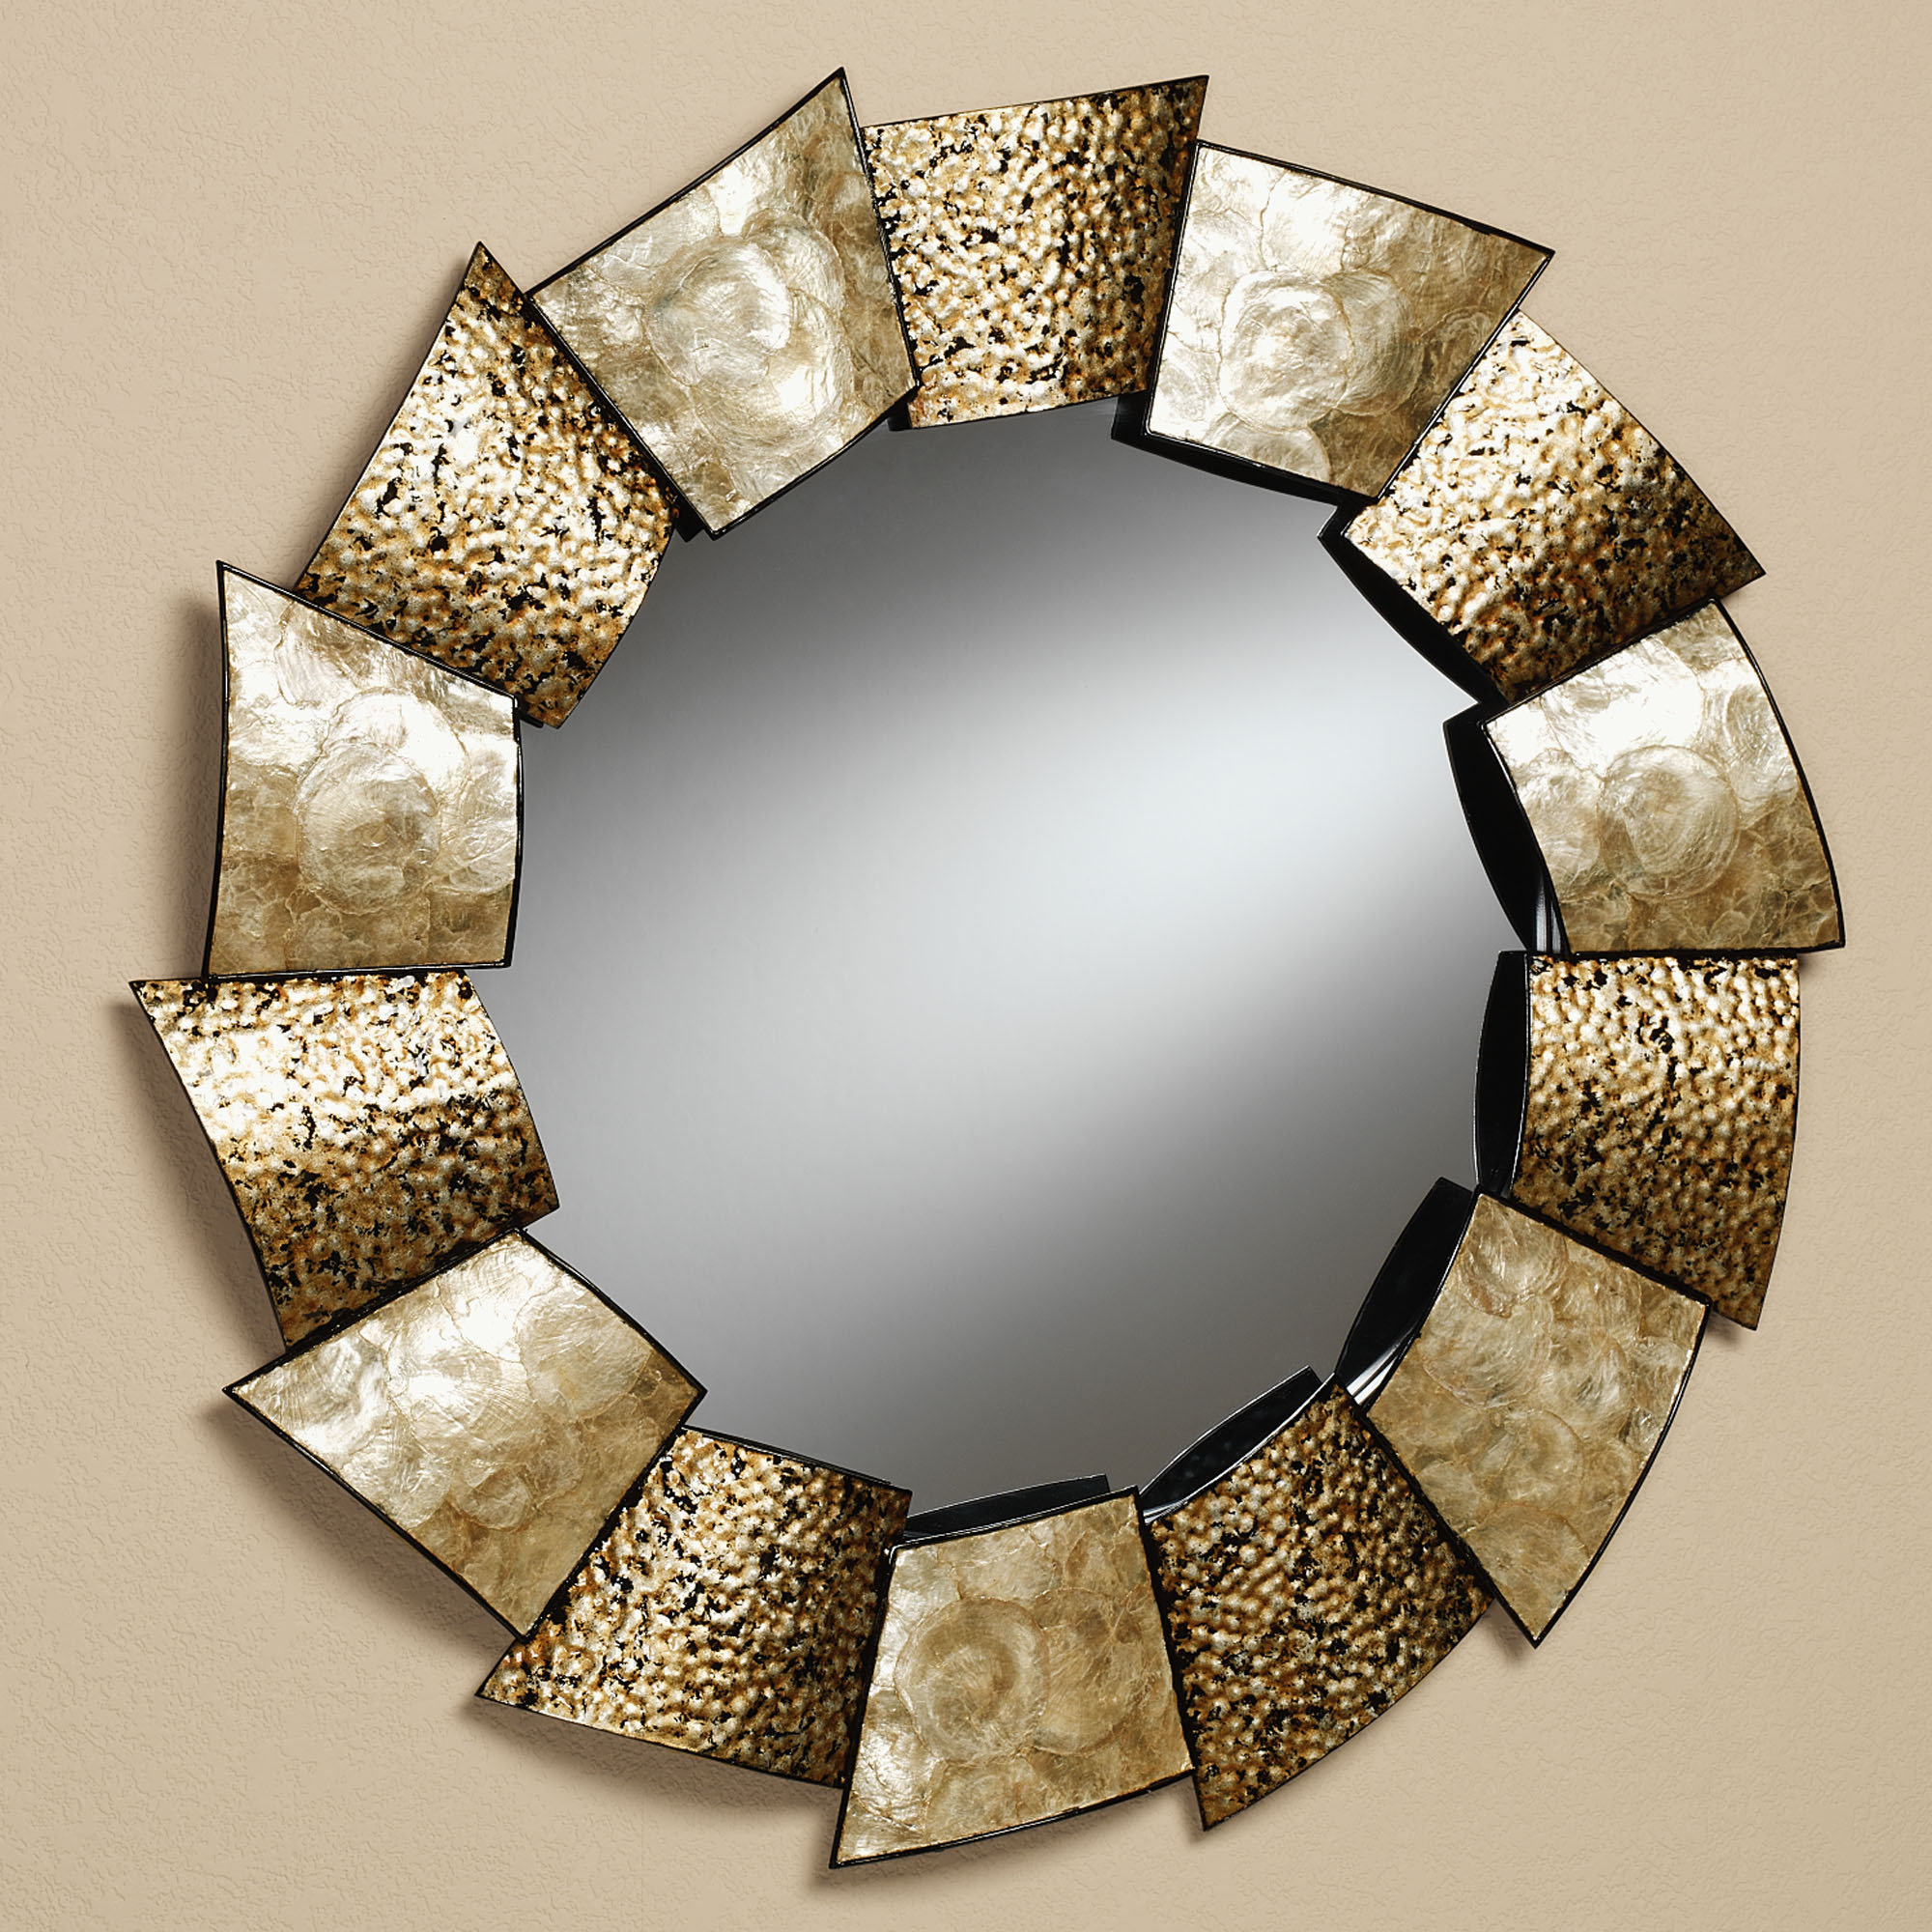 astonishing-cool-full-length-decorative-ikea-round-wall-mirror-with-unique-light-brown-edge-frames-for-living-room-ideas-with-mirror-living-room-and-large-decorative-wall-mirrors